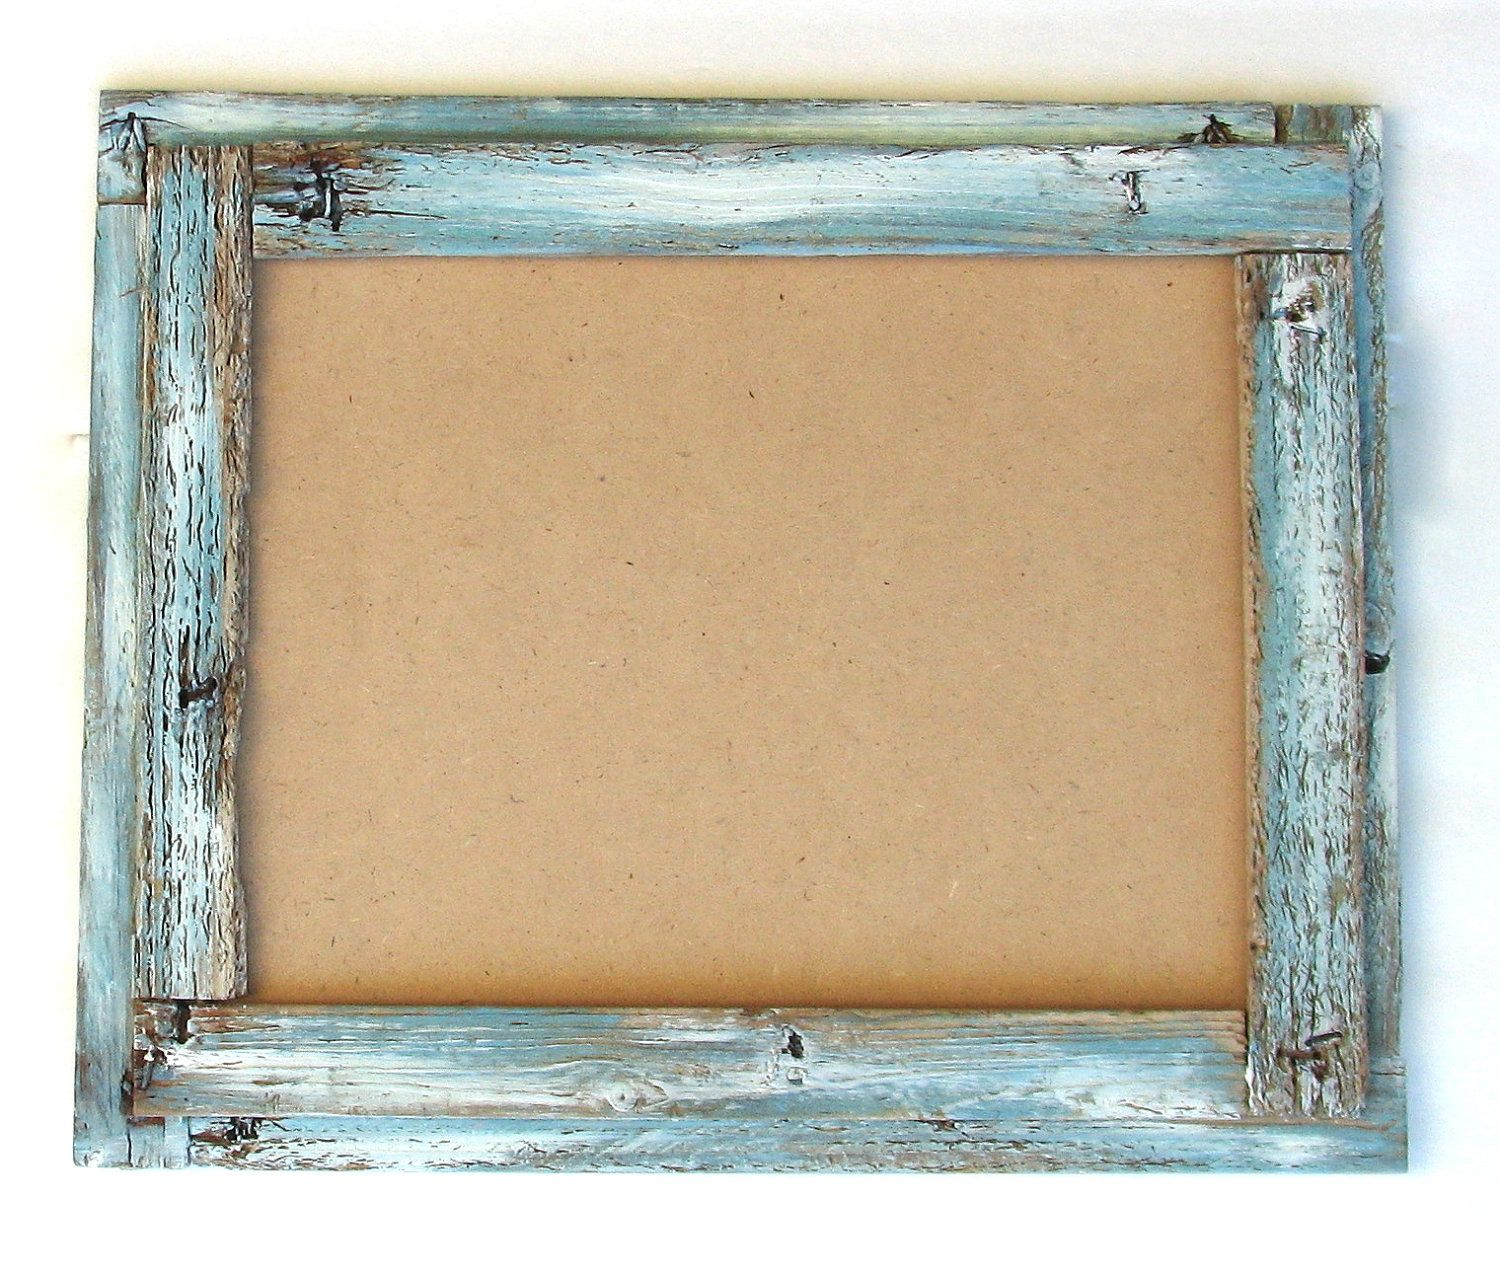 rustic wood picture frames rustic wood frames   Bing images | Cabin in 2018 | Frame, Crab  rustic wood picture frames